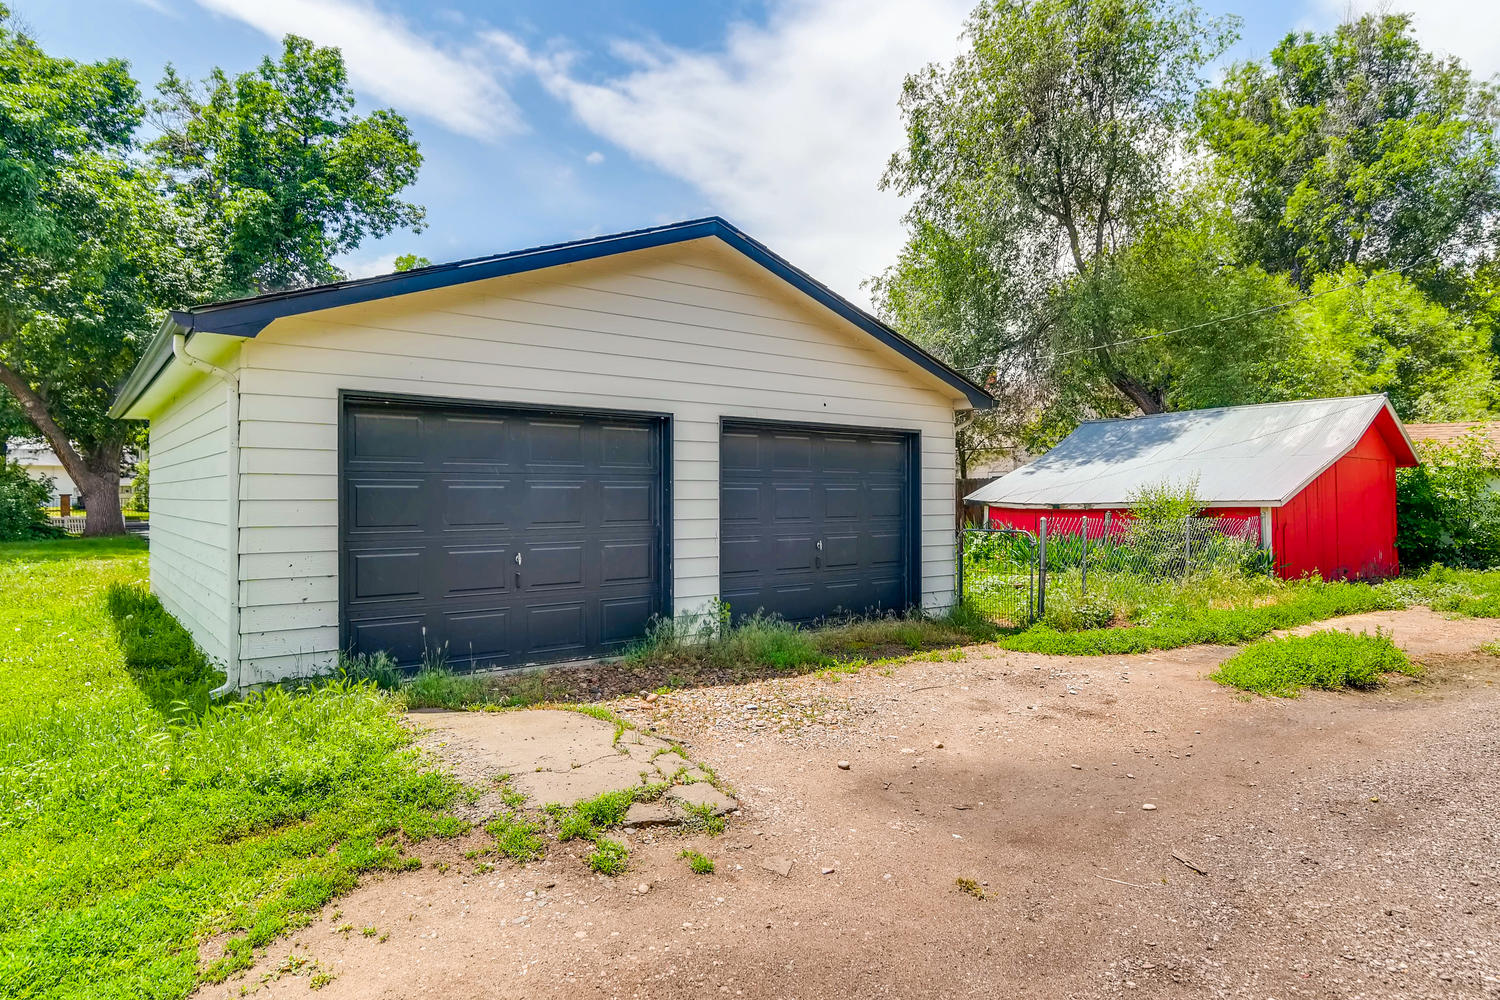 REAL ESTATE LISTING: 1201 E 1st Street Loveland CO Detached Garage